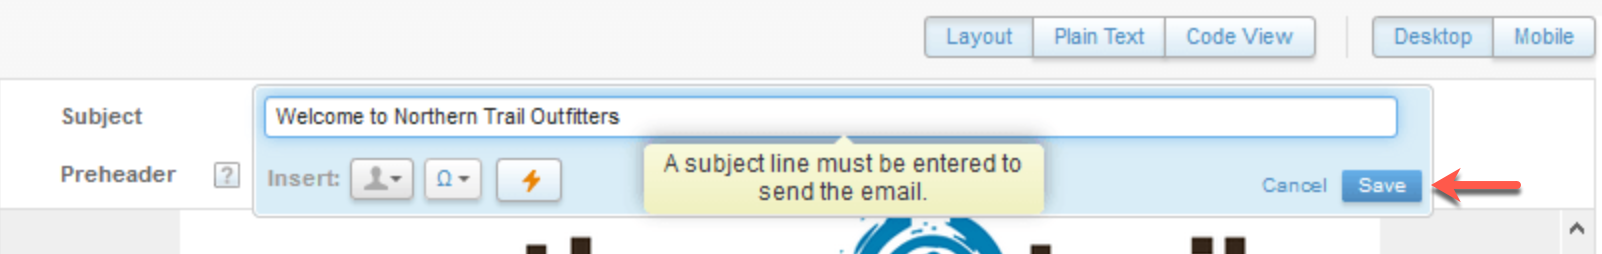 A screen shot showing a red arrow pointing to the Save button in the bottom right hand corner of the Subject line box.